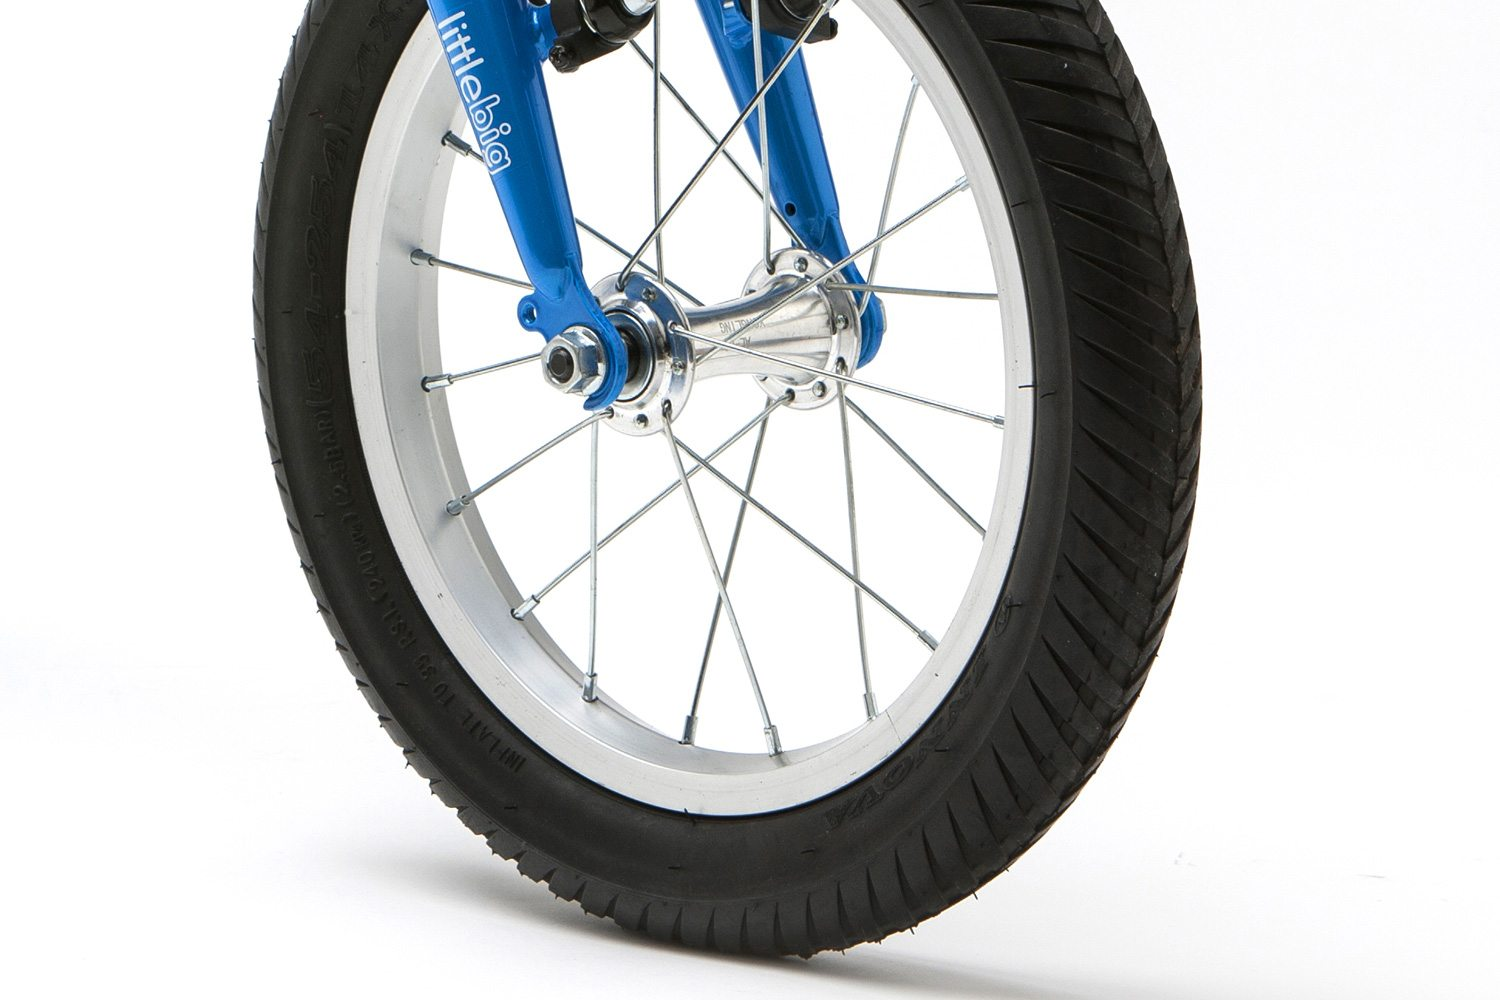 Comfortable air tires, alloy rims with alloy ball bearing hubs